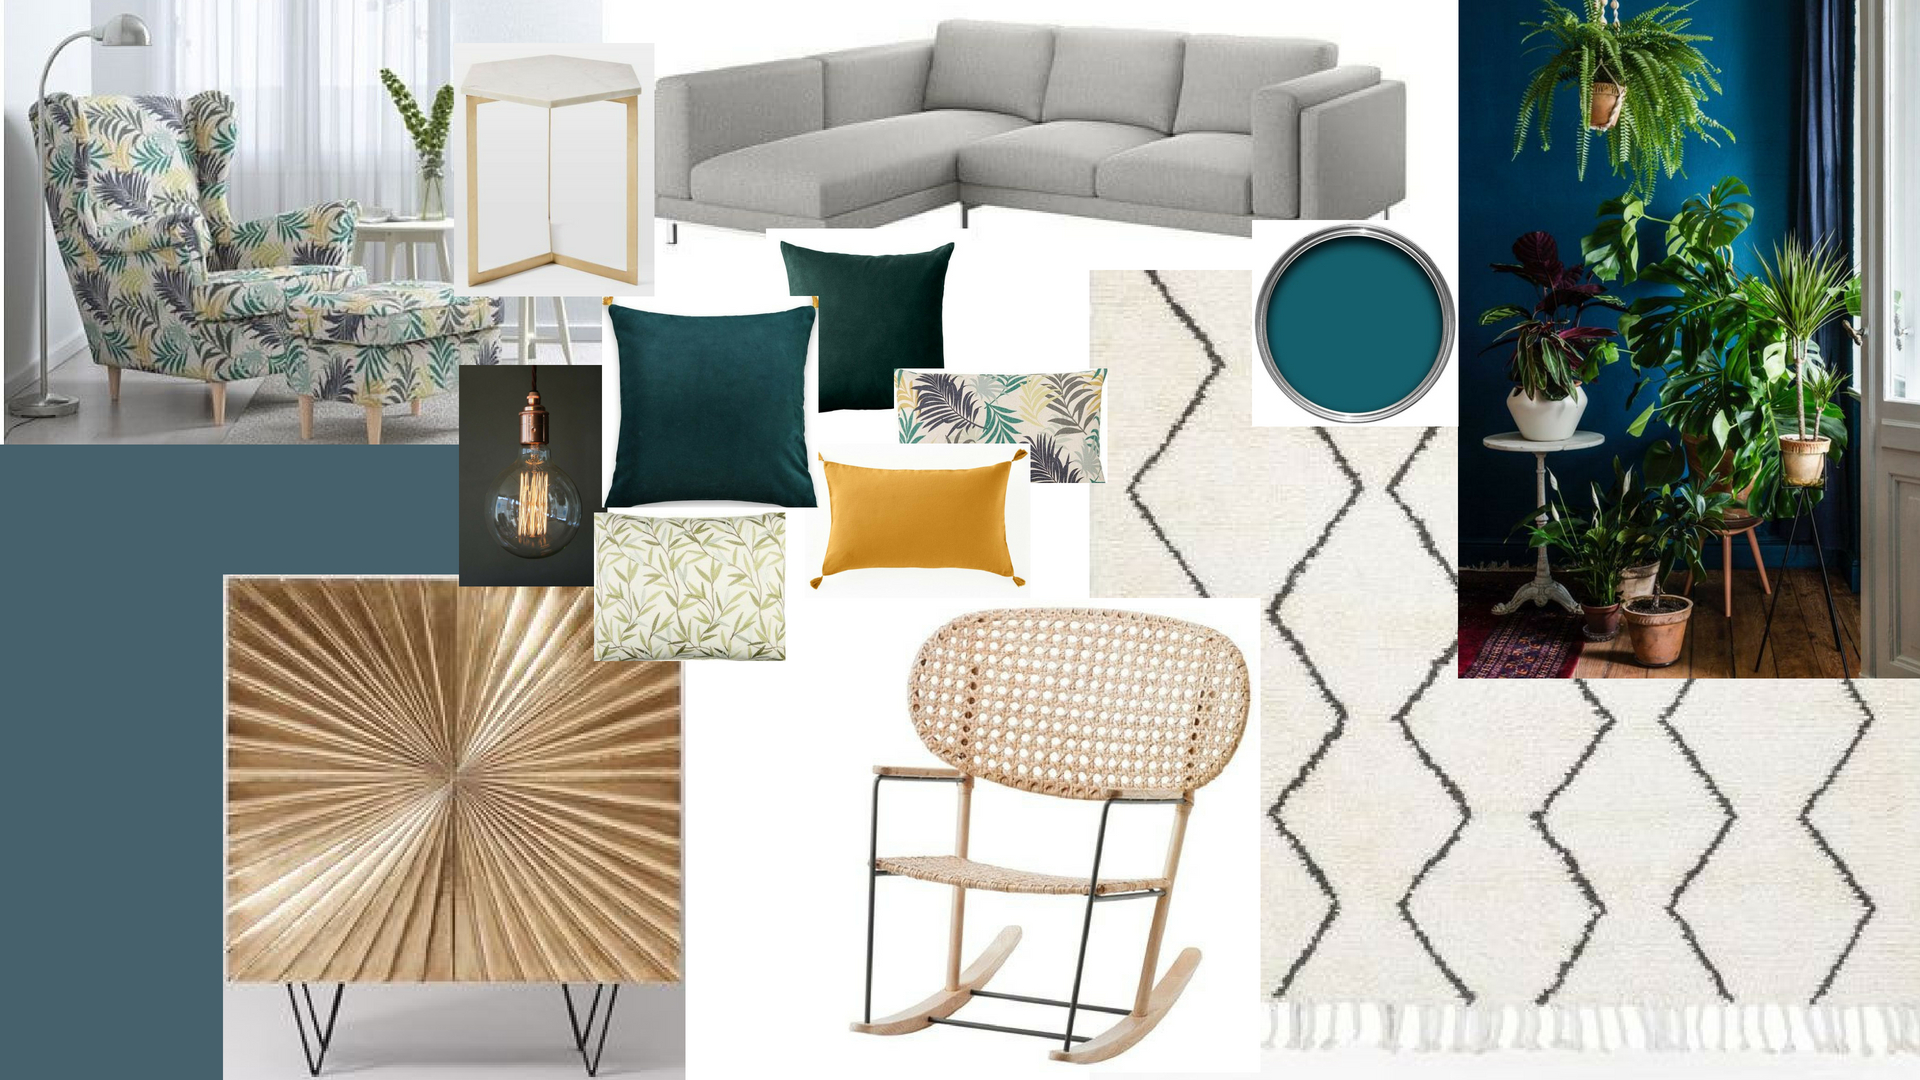 You can find all links to products on here via my pinterest board 'Living Room'- linked below.